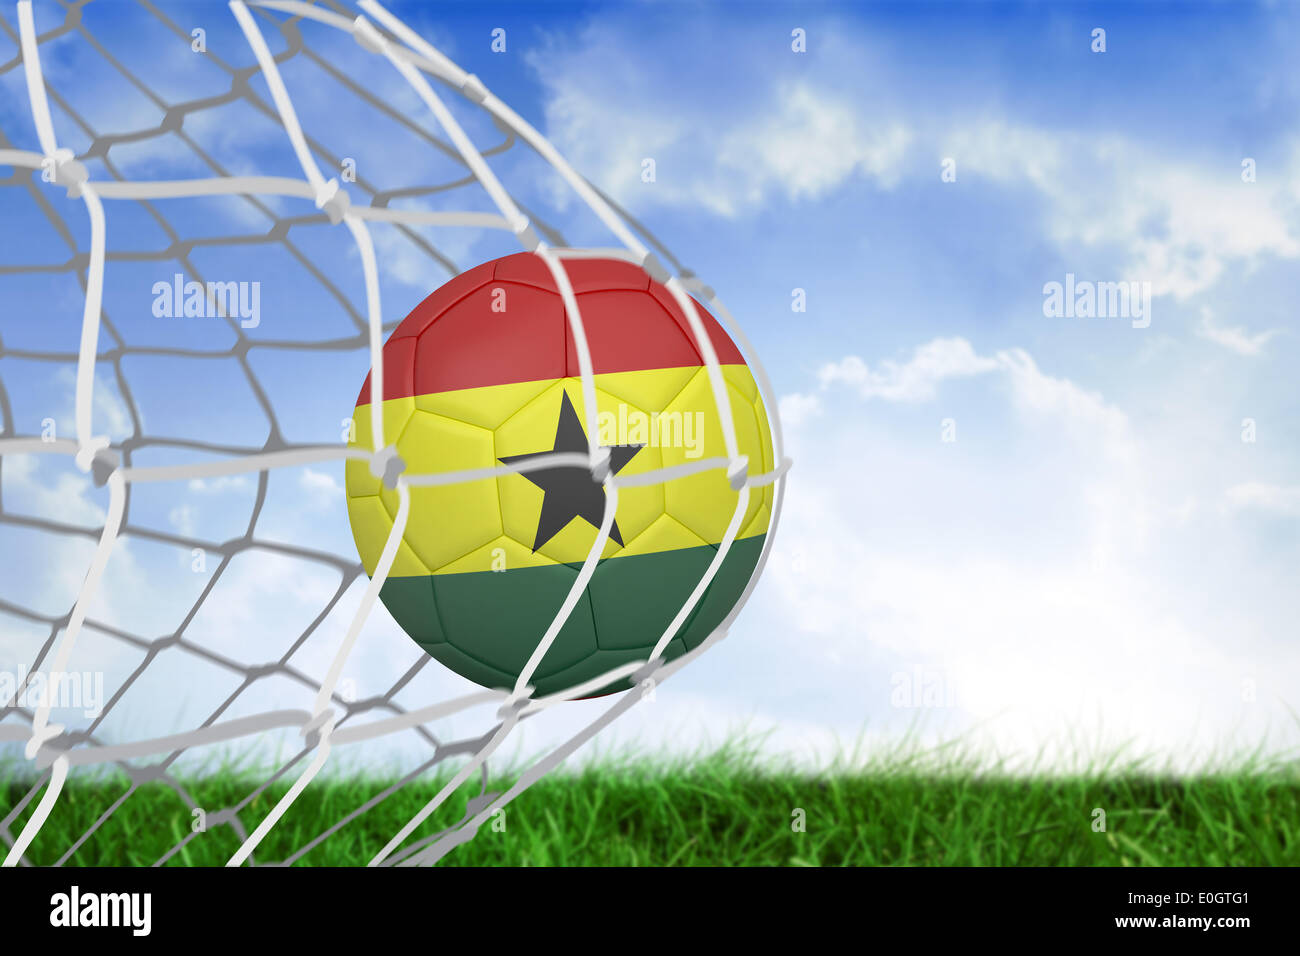 Football in ghana colours at back of net - Stock Image